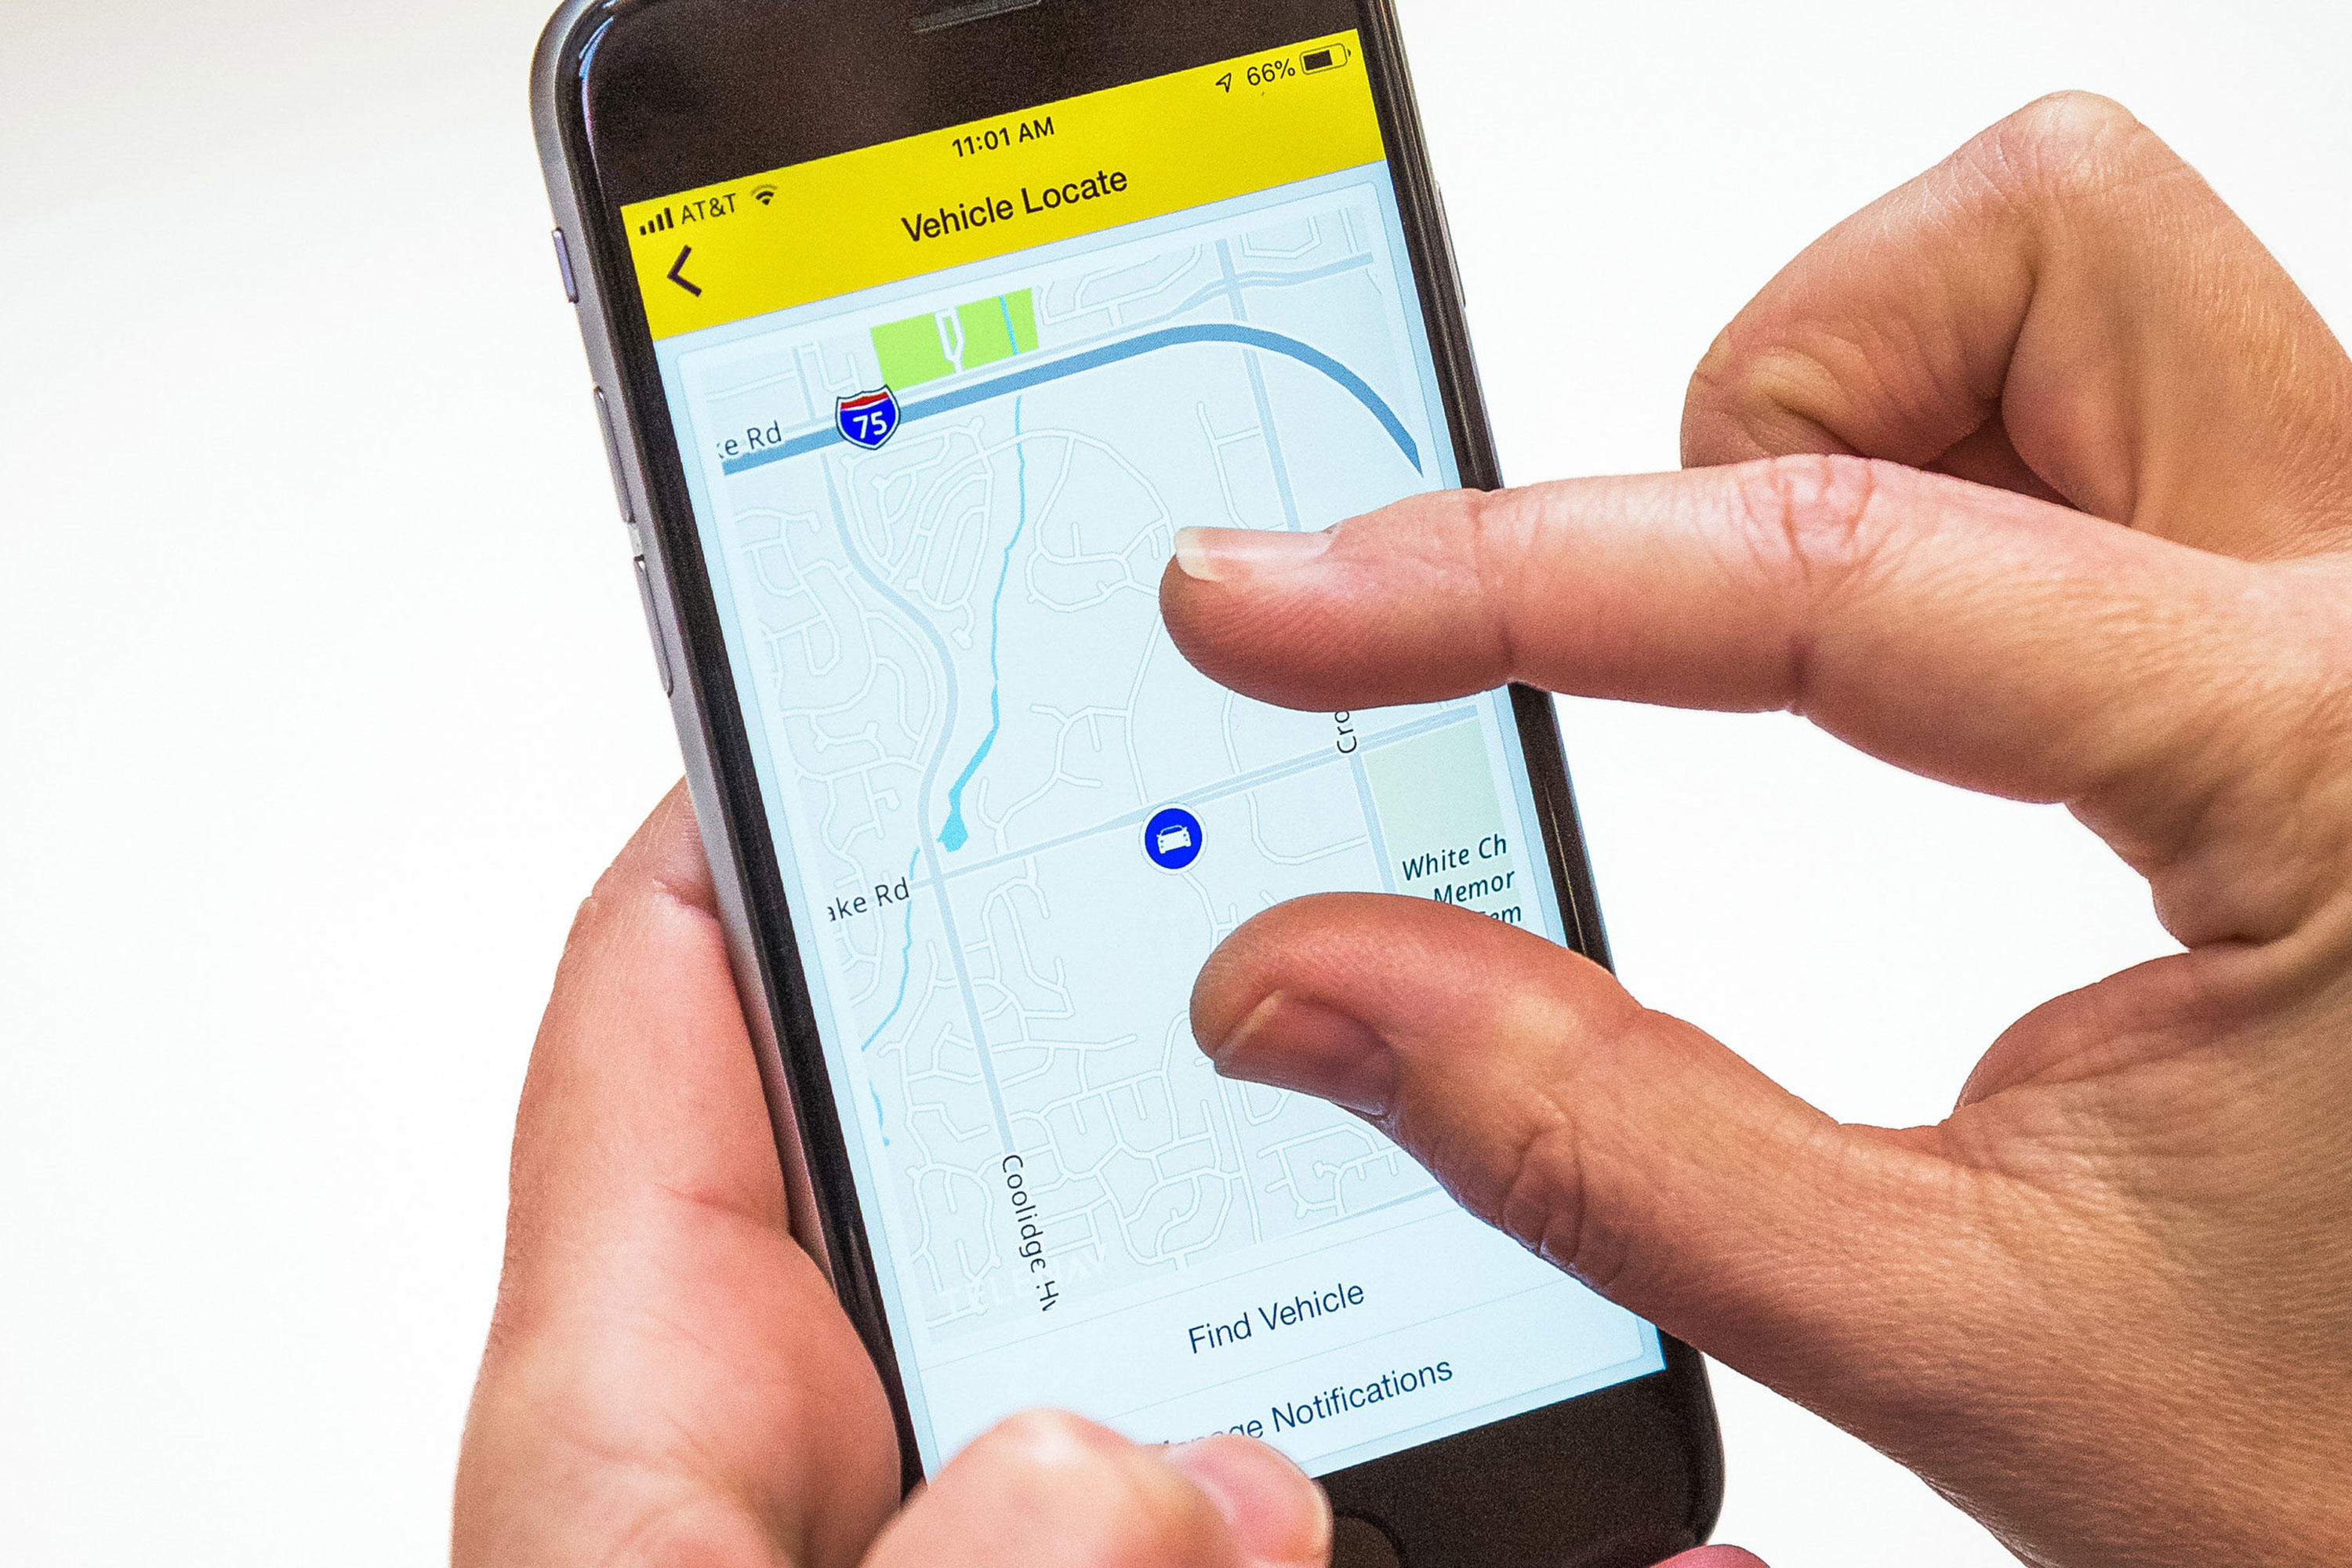 Chevy App Adds Vehicle Locate Function And Geofence Alerts For Your Phone Roadshow